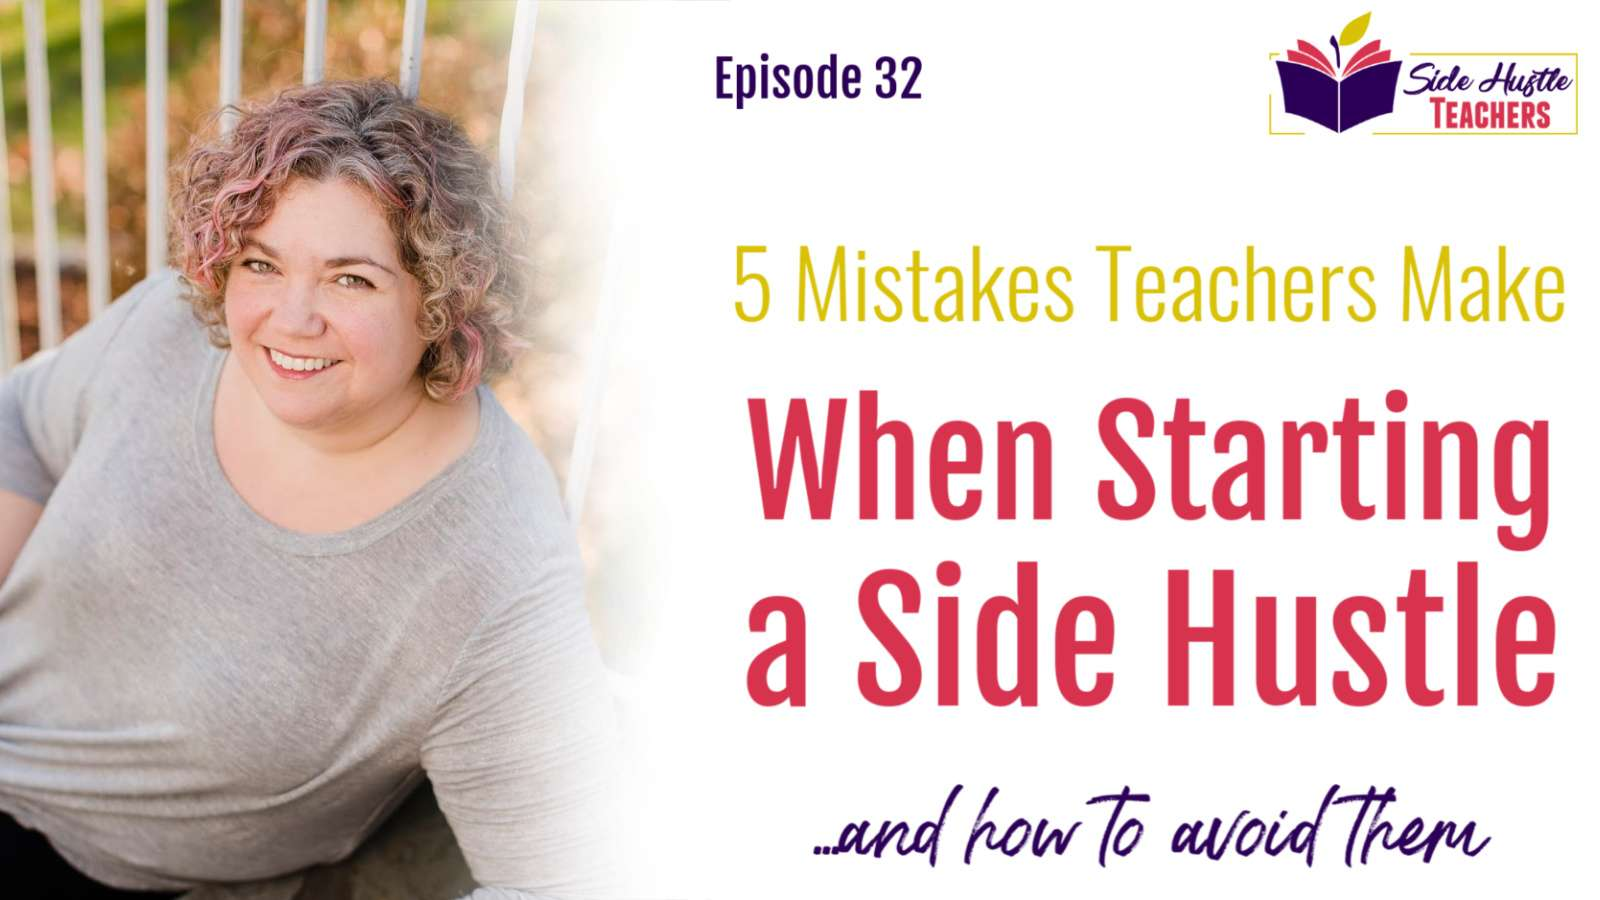 When you're starting something new, mistakes are inevitable.  But some mistakes are avoidable, if you're prepared for them. Here are 5 of the mistakes I see most often with clients and members of the Side Hustle Teachers community, and how to avoid them.